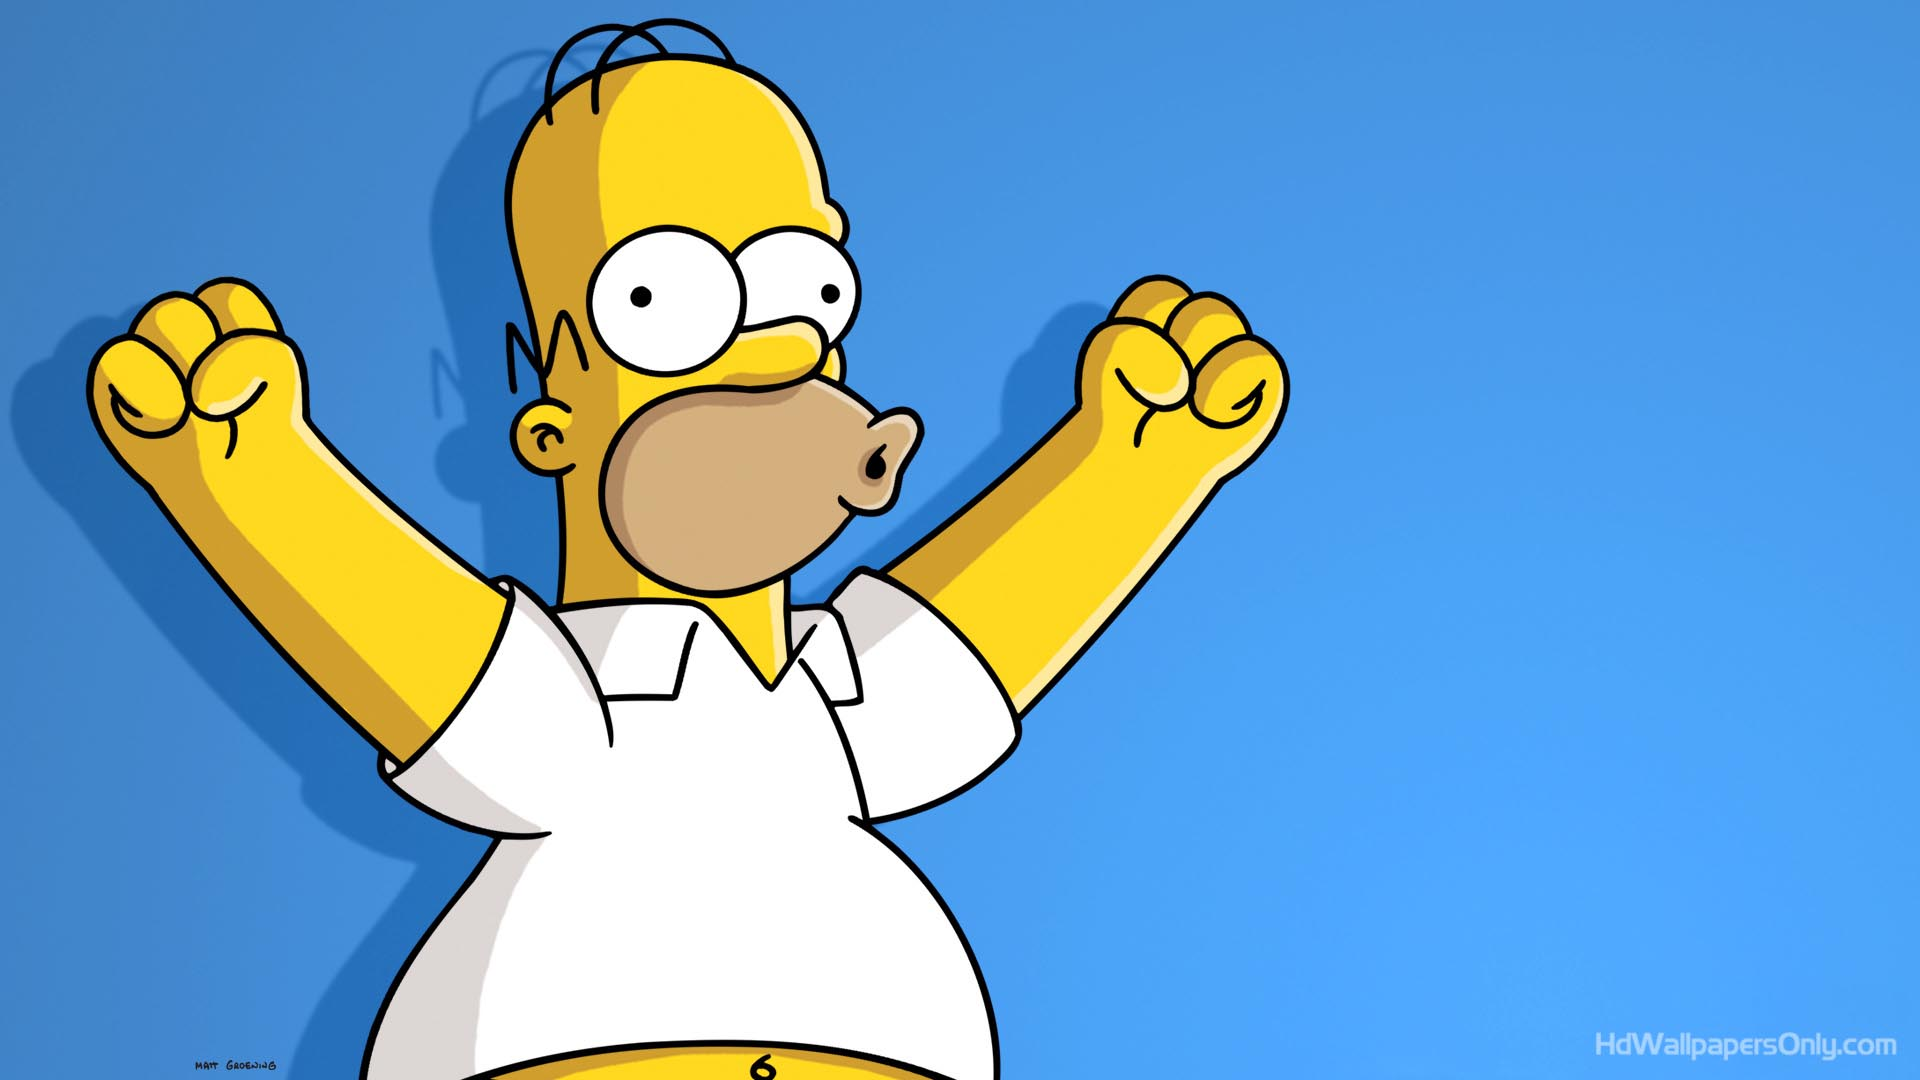 The Simpsons Wallpapers HD - Wallpaper Cave